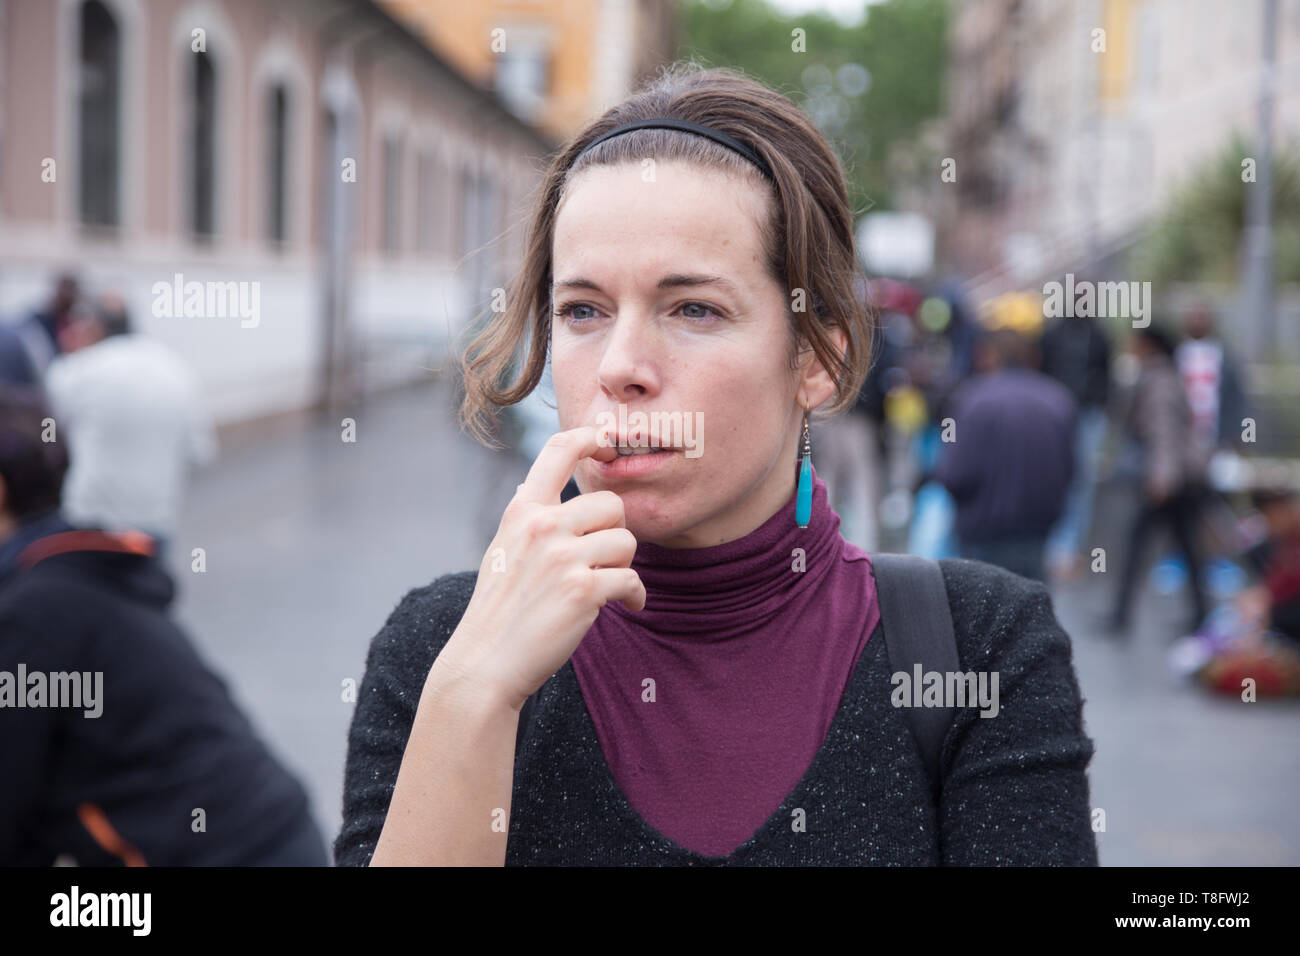 Roma, Italy. 11th May, 2019. An italian volunteer A project organized by the Eco dalle Città association with the sponsorship of the I municipality to the new Esquilino market in Rome Credit: Matteo Nardone/Pacific Press/Alamy Live News - Stock Image